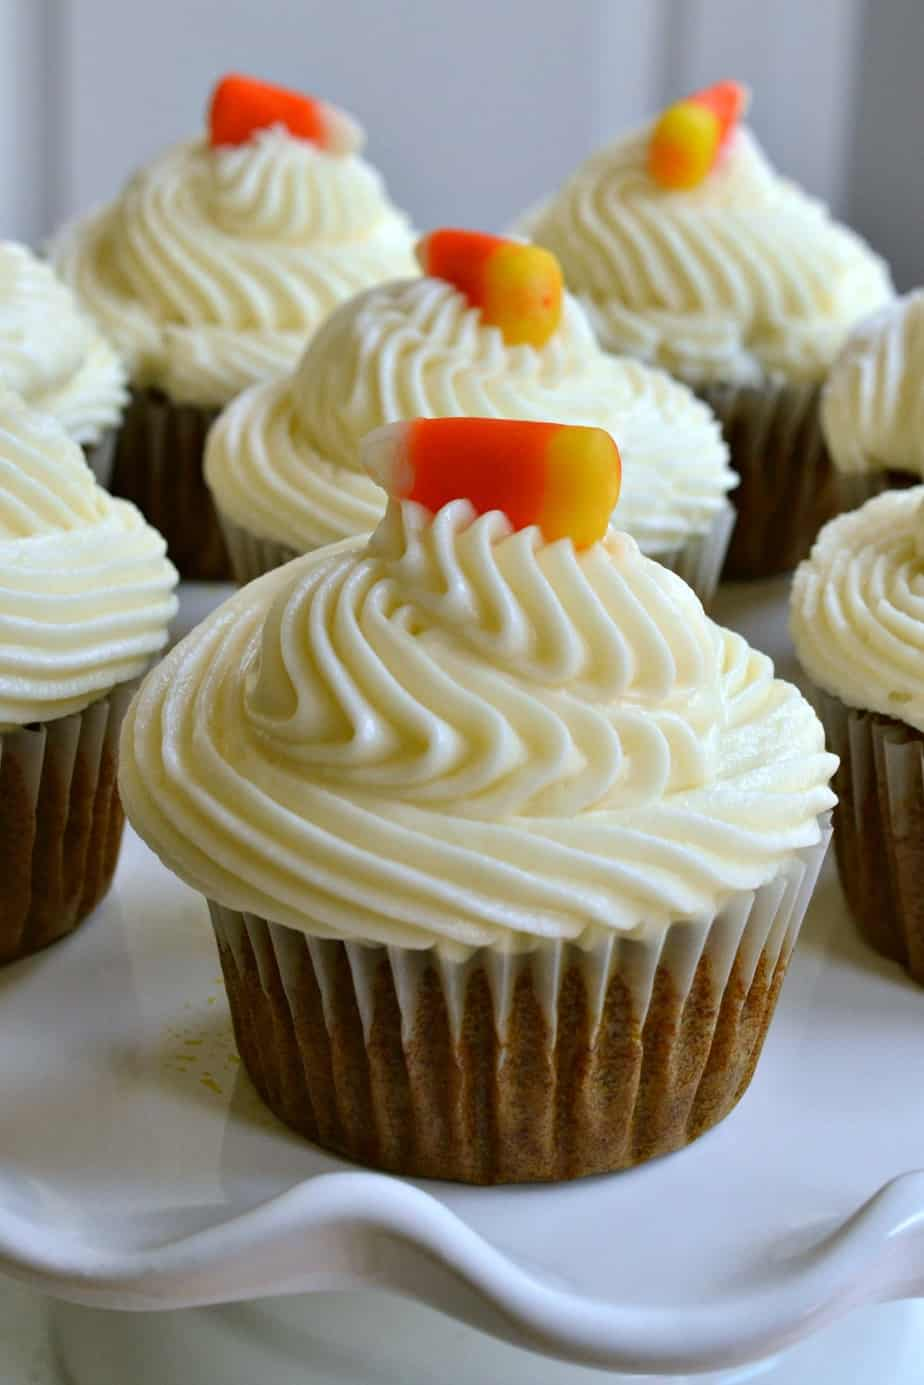 These Pumpkin Cupcakes are the perfect individually proportioned sweet treat.